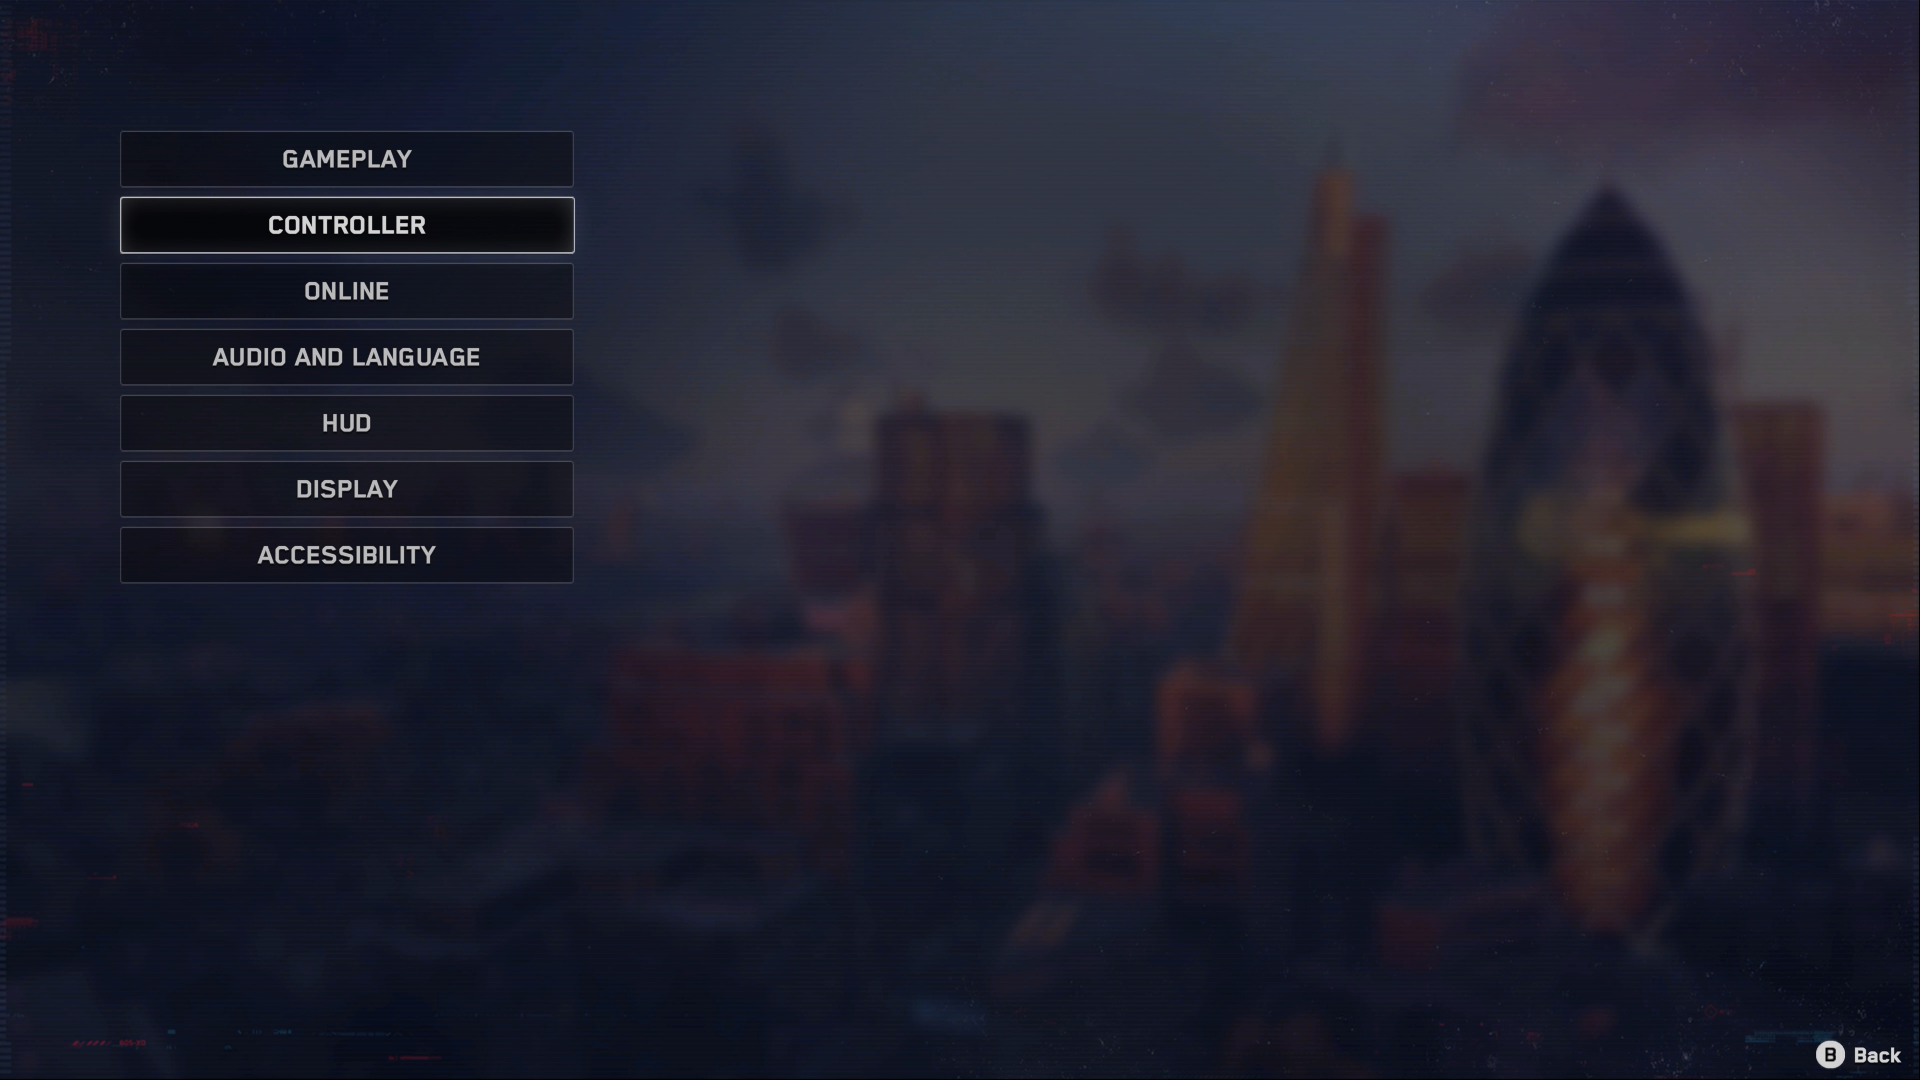 A Screenshot of the Watch Dogs: Legion menu showing access to Gameplay, Controller, Online, Audio and Language, HUD, Display and Accessibility menus.